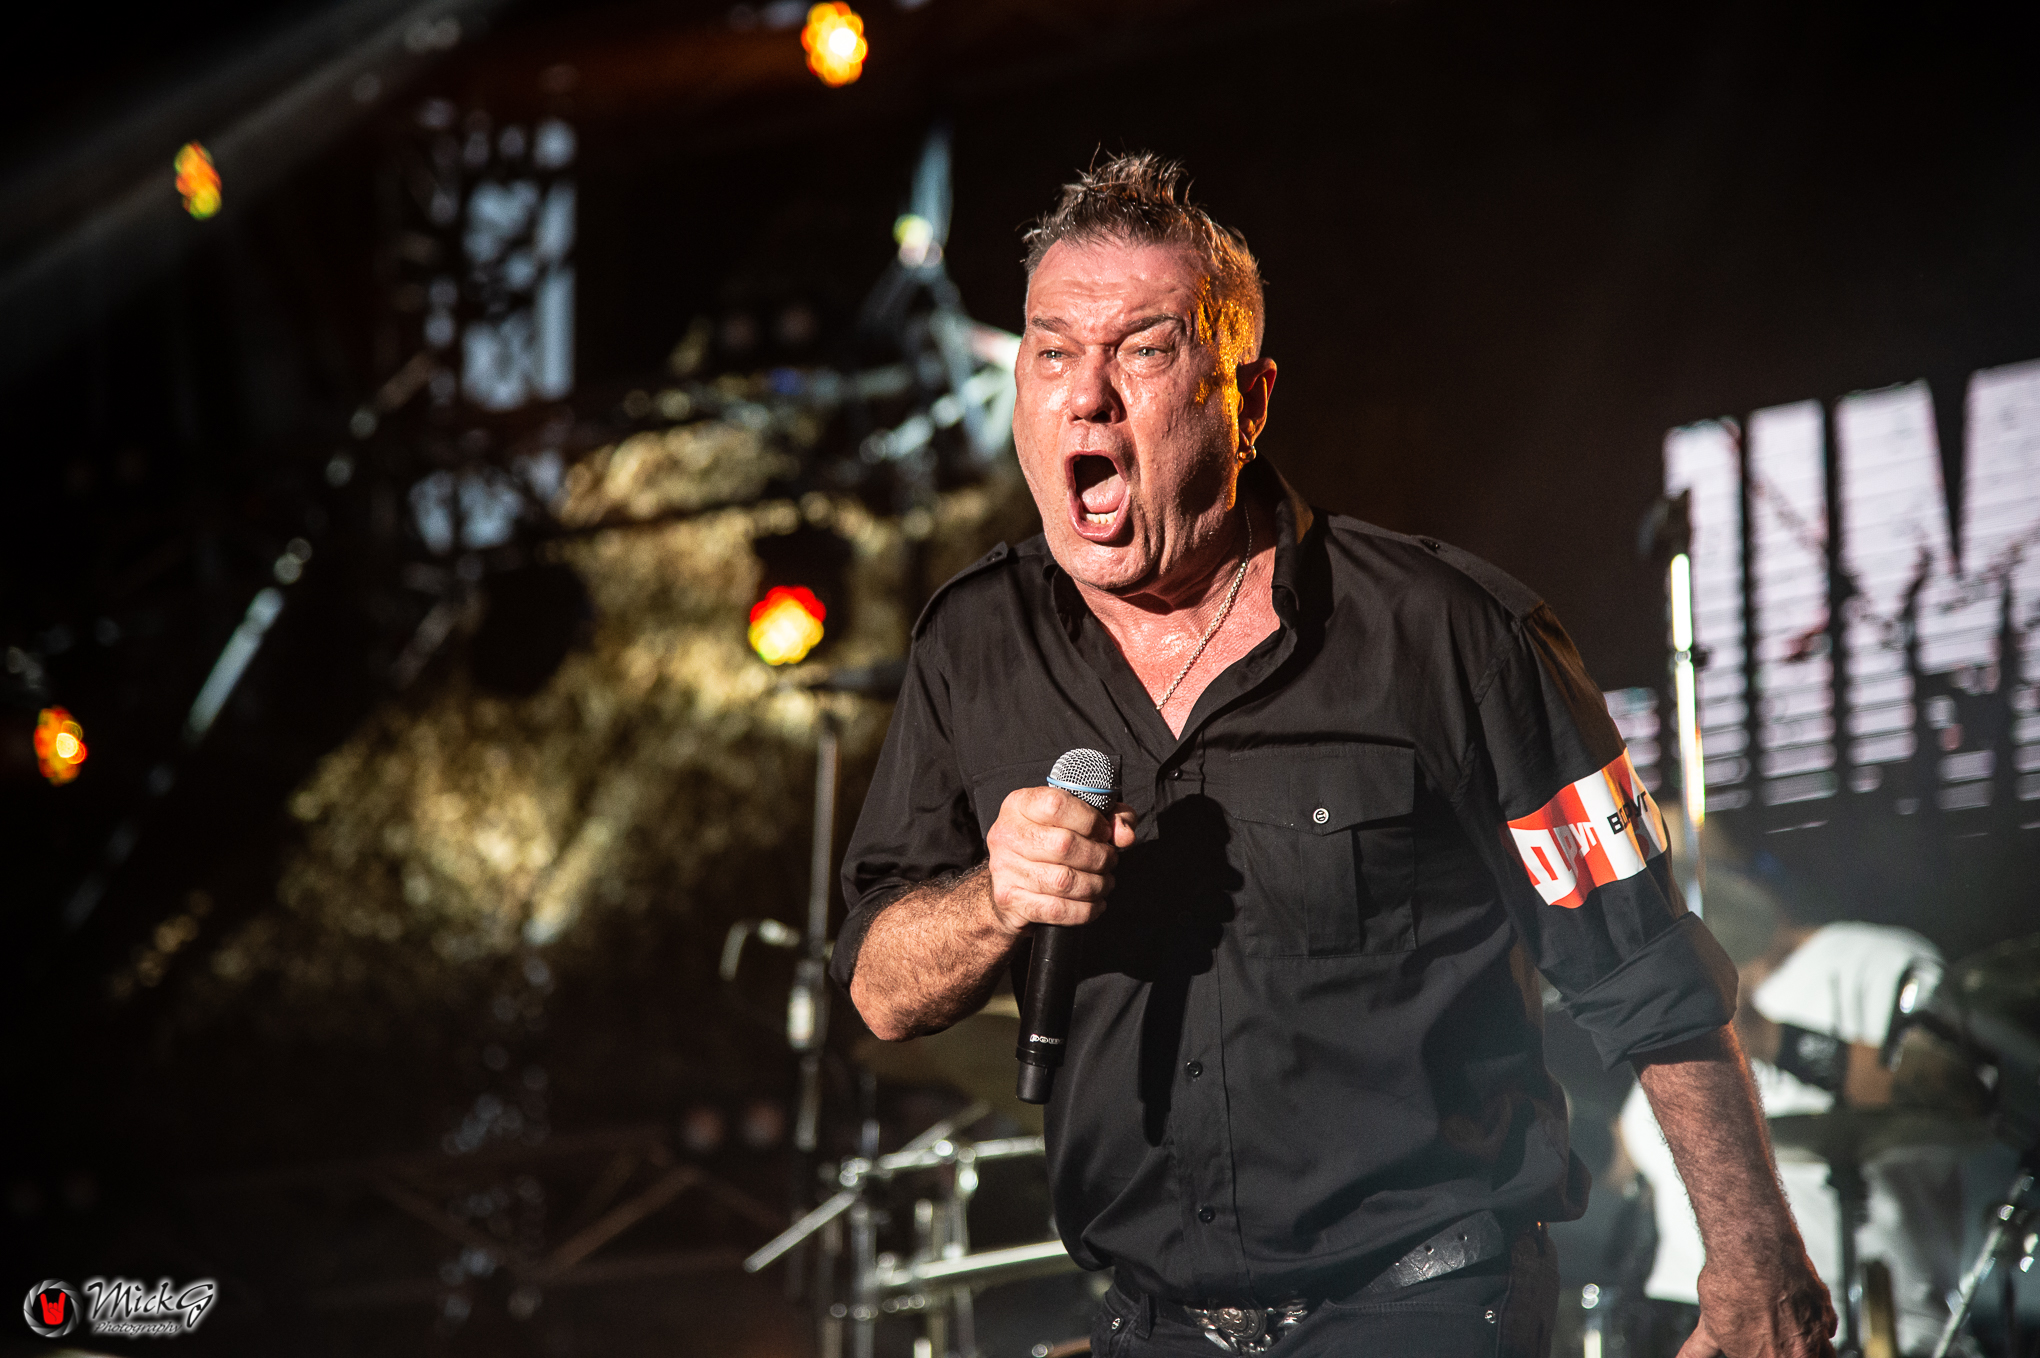 Jimmy_Barnes-57